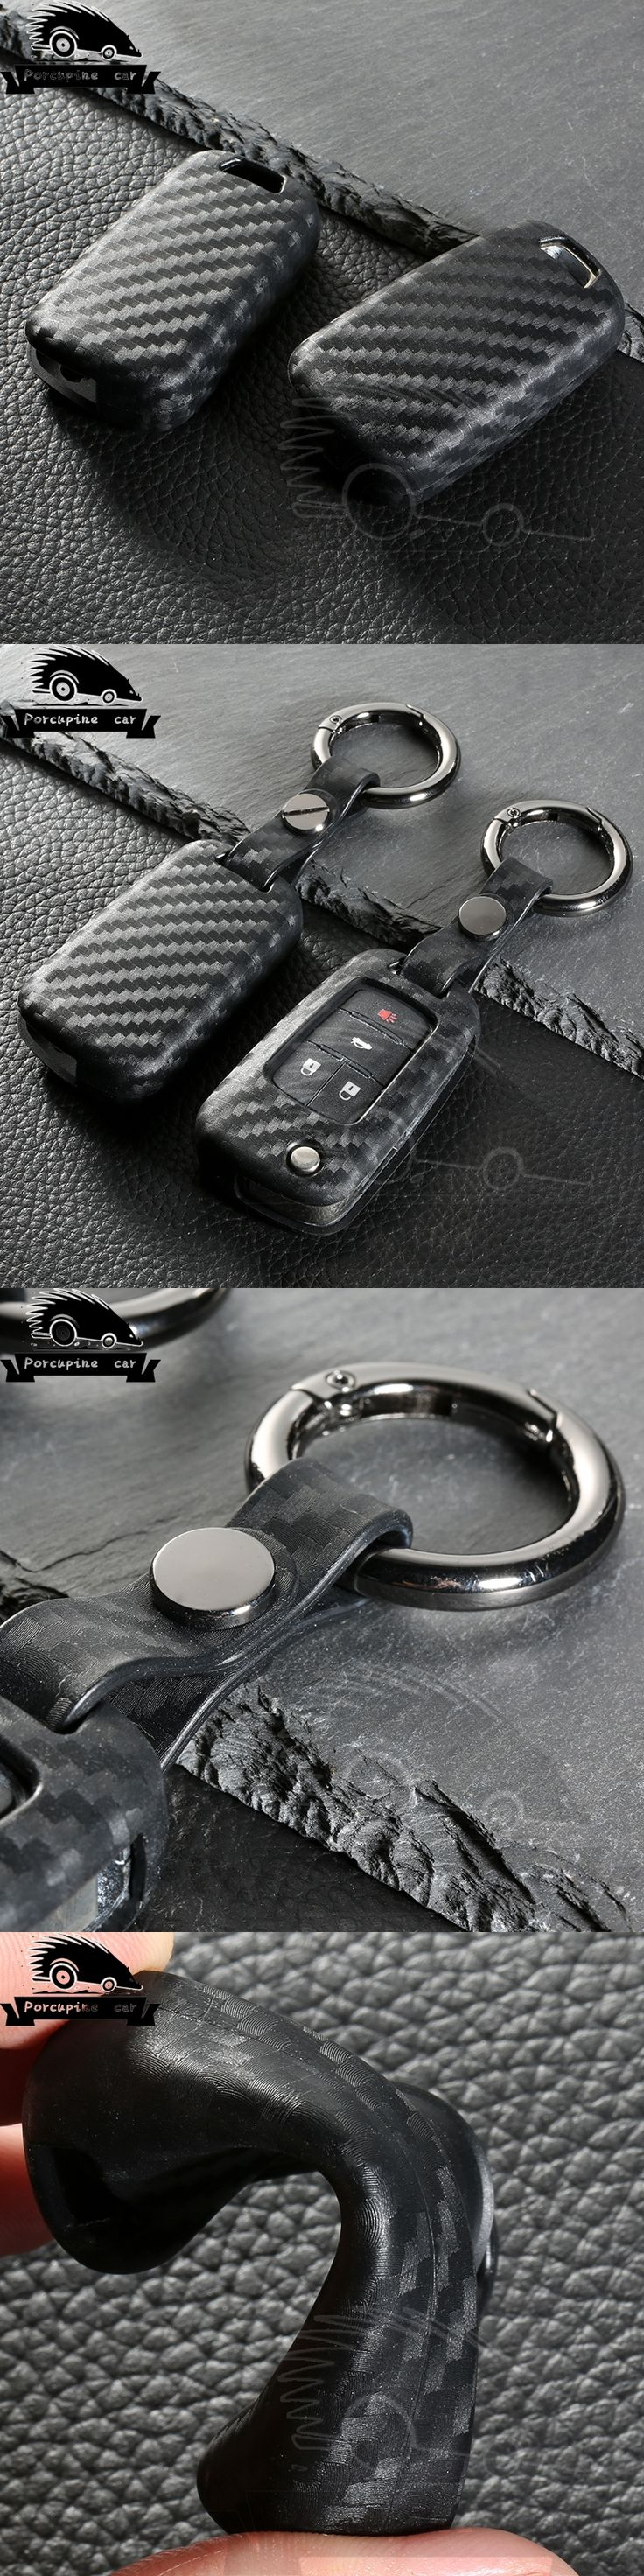 Carbon Fiber Silica gel Car Remote Flip Key Case Cover for Chevrolet Spark Aveo Malibu Cruze Volt Camaro Equinox Sonic Buick